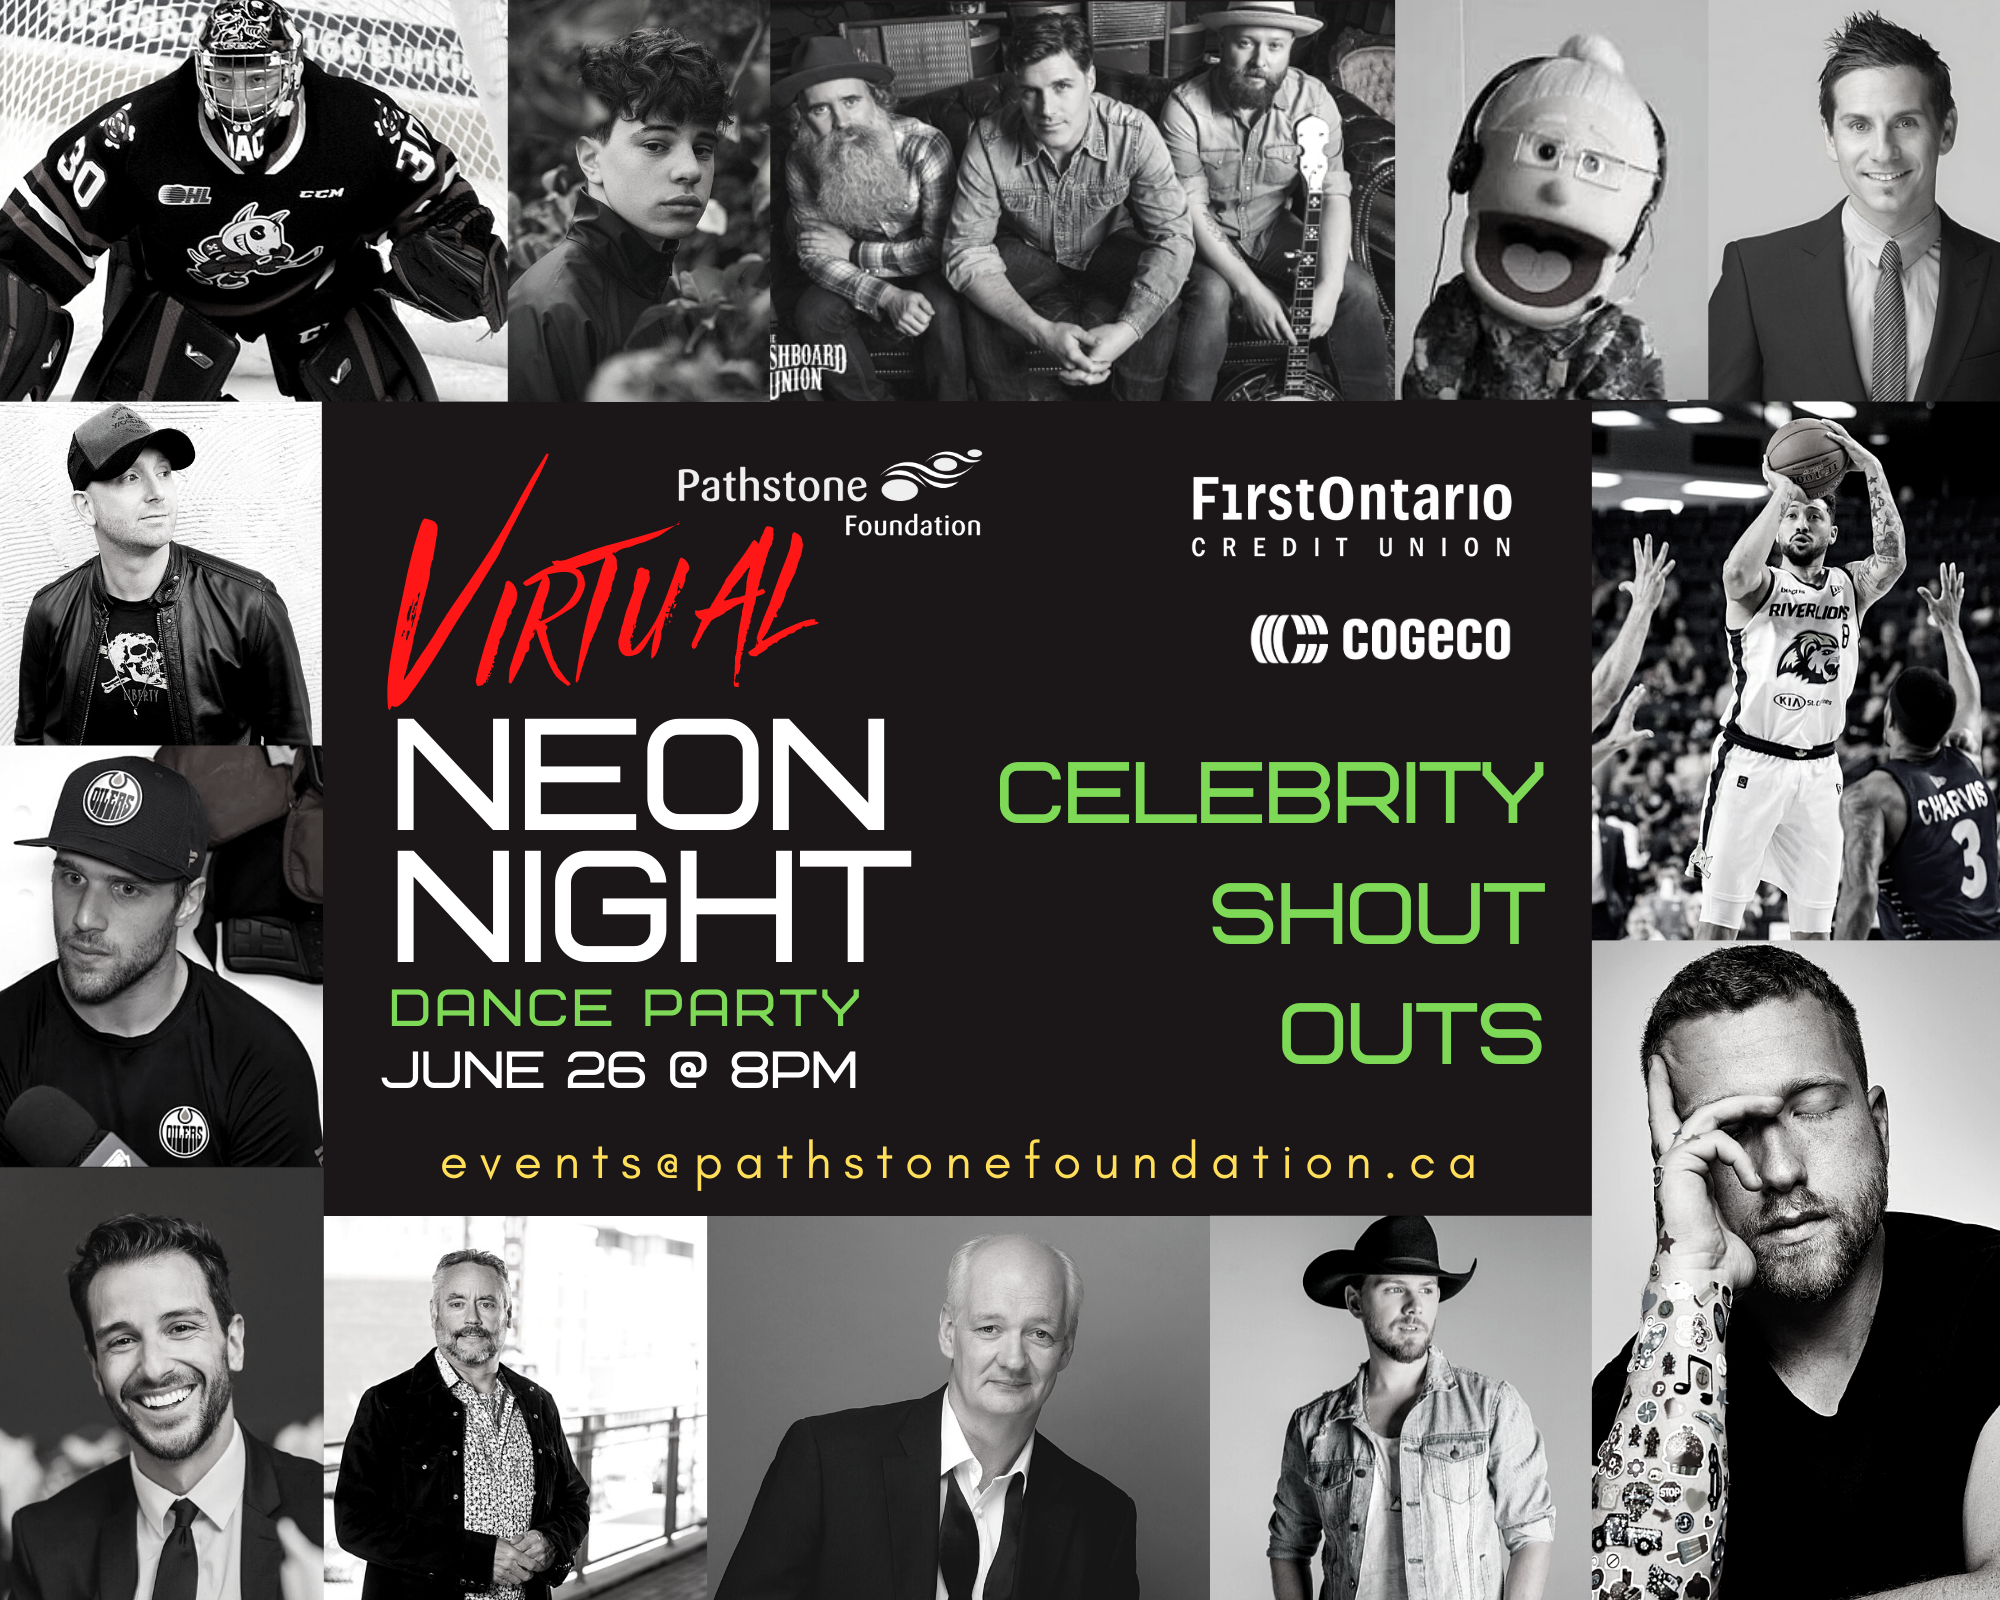 Neon Night Virtual Dance Party features Celeb Shout Outs to 2020 Graduates